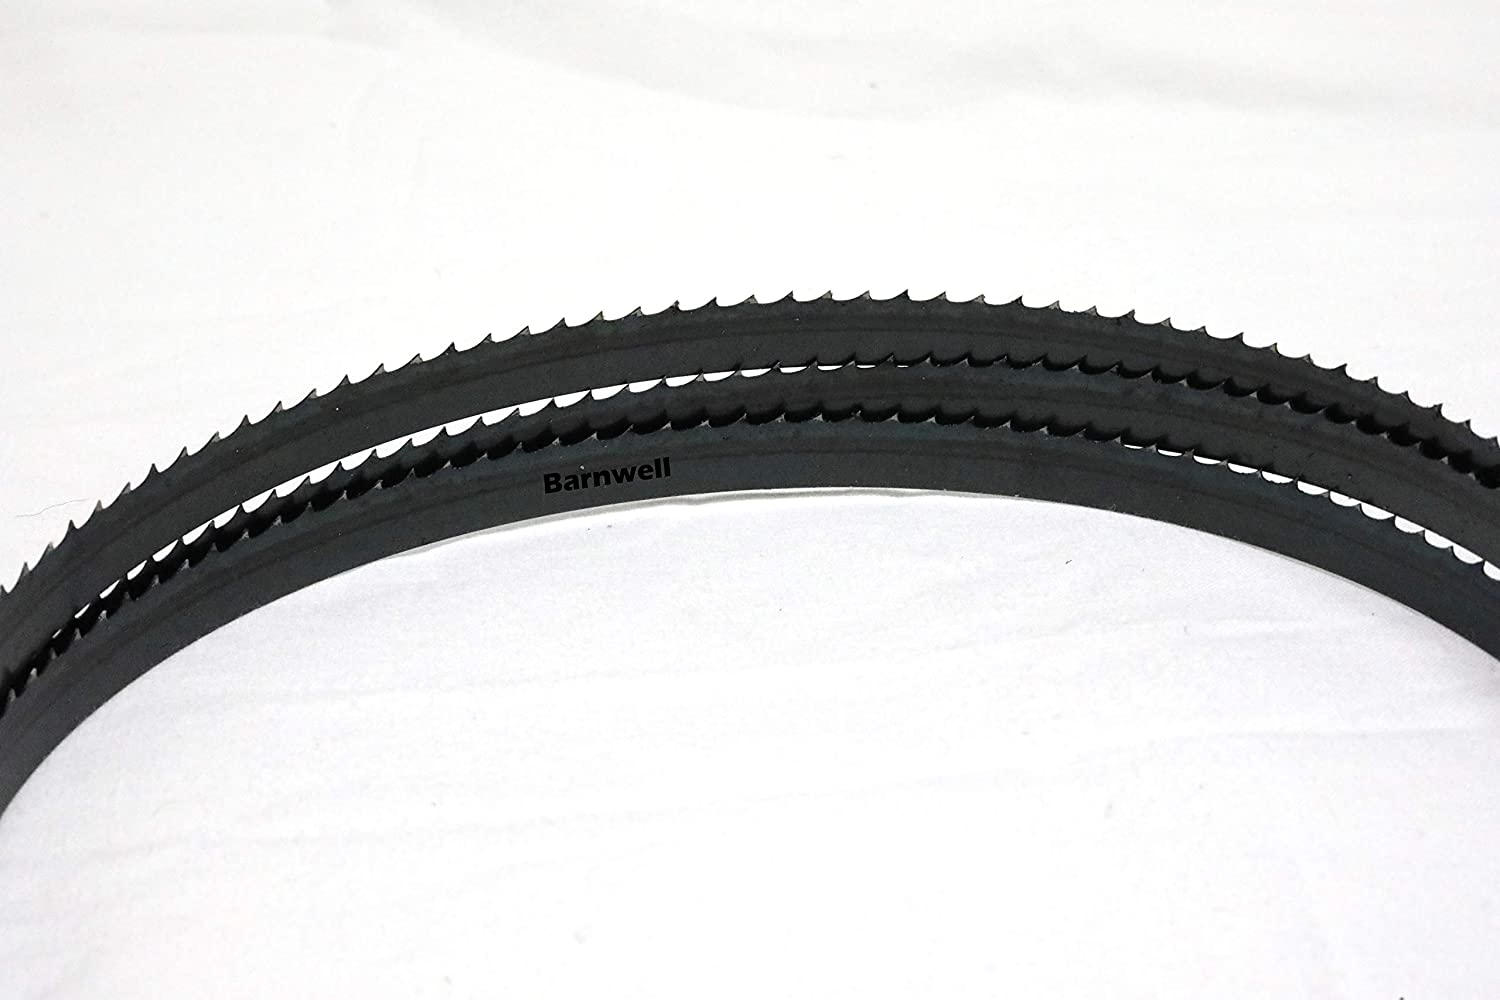 55.1//8 Fox F28-182 Bandsaw Blade to fit Charnwood 711 BB02 Scheppach Hbs 20 Barnwell 1400mm 1//4 x 10tpi